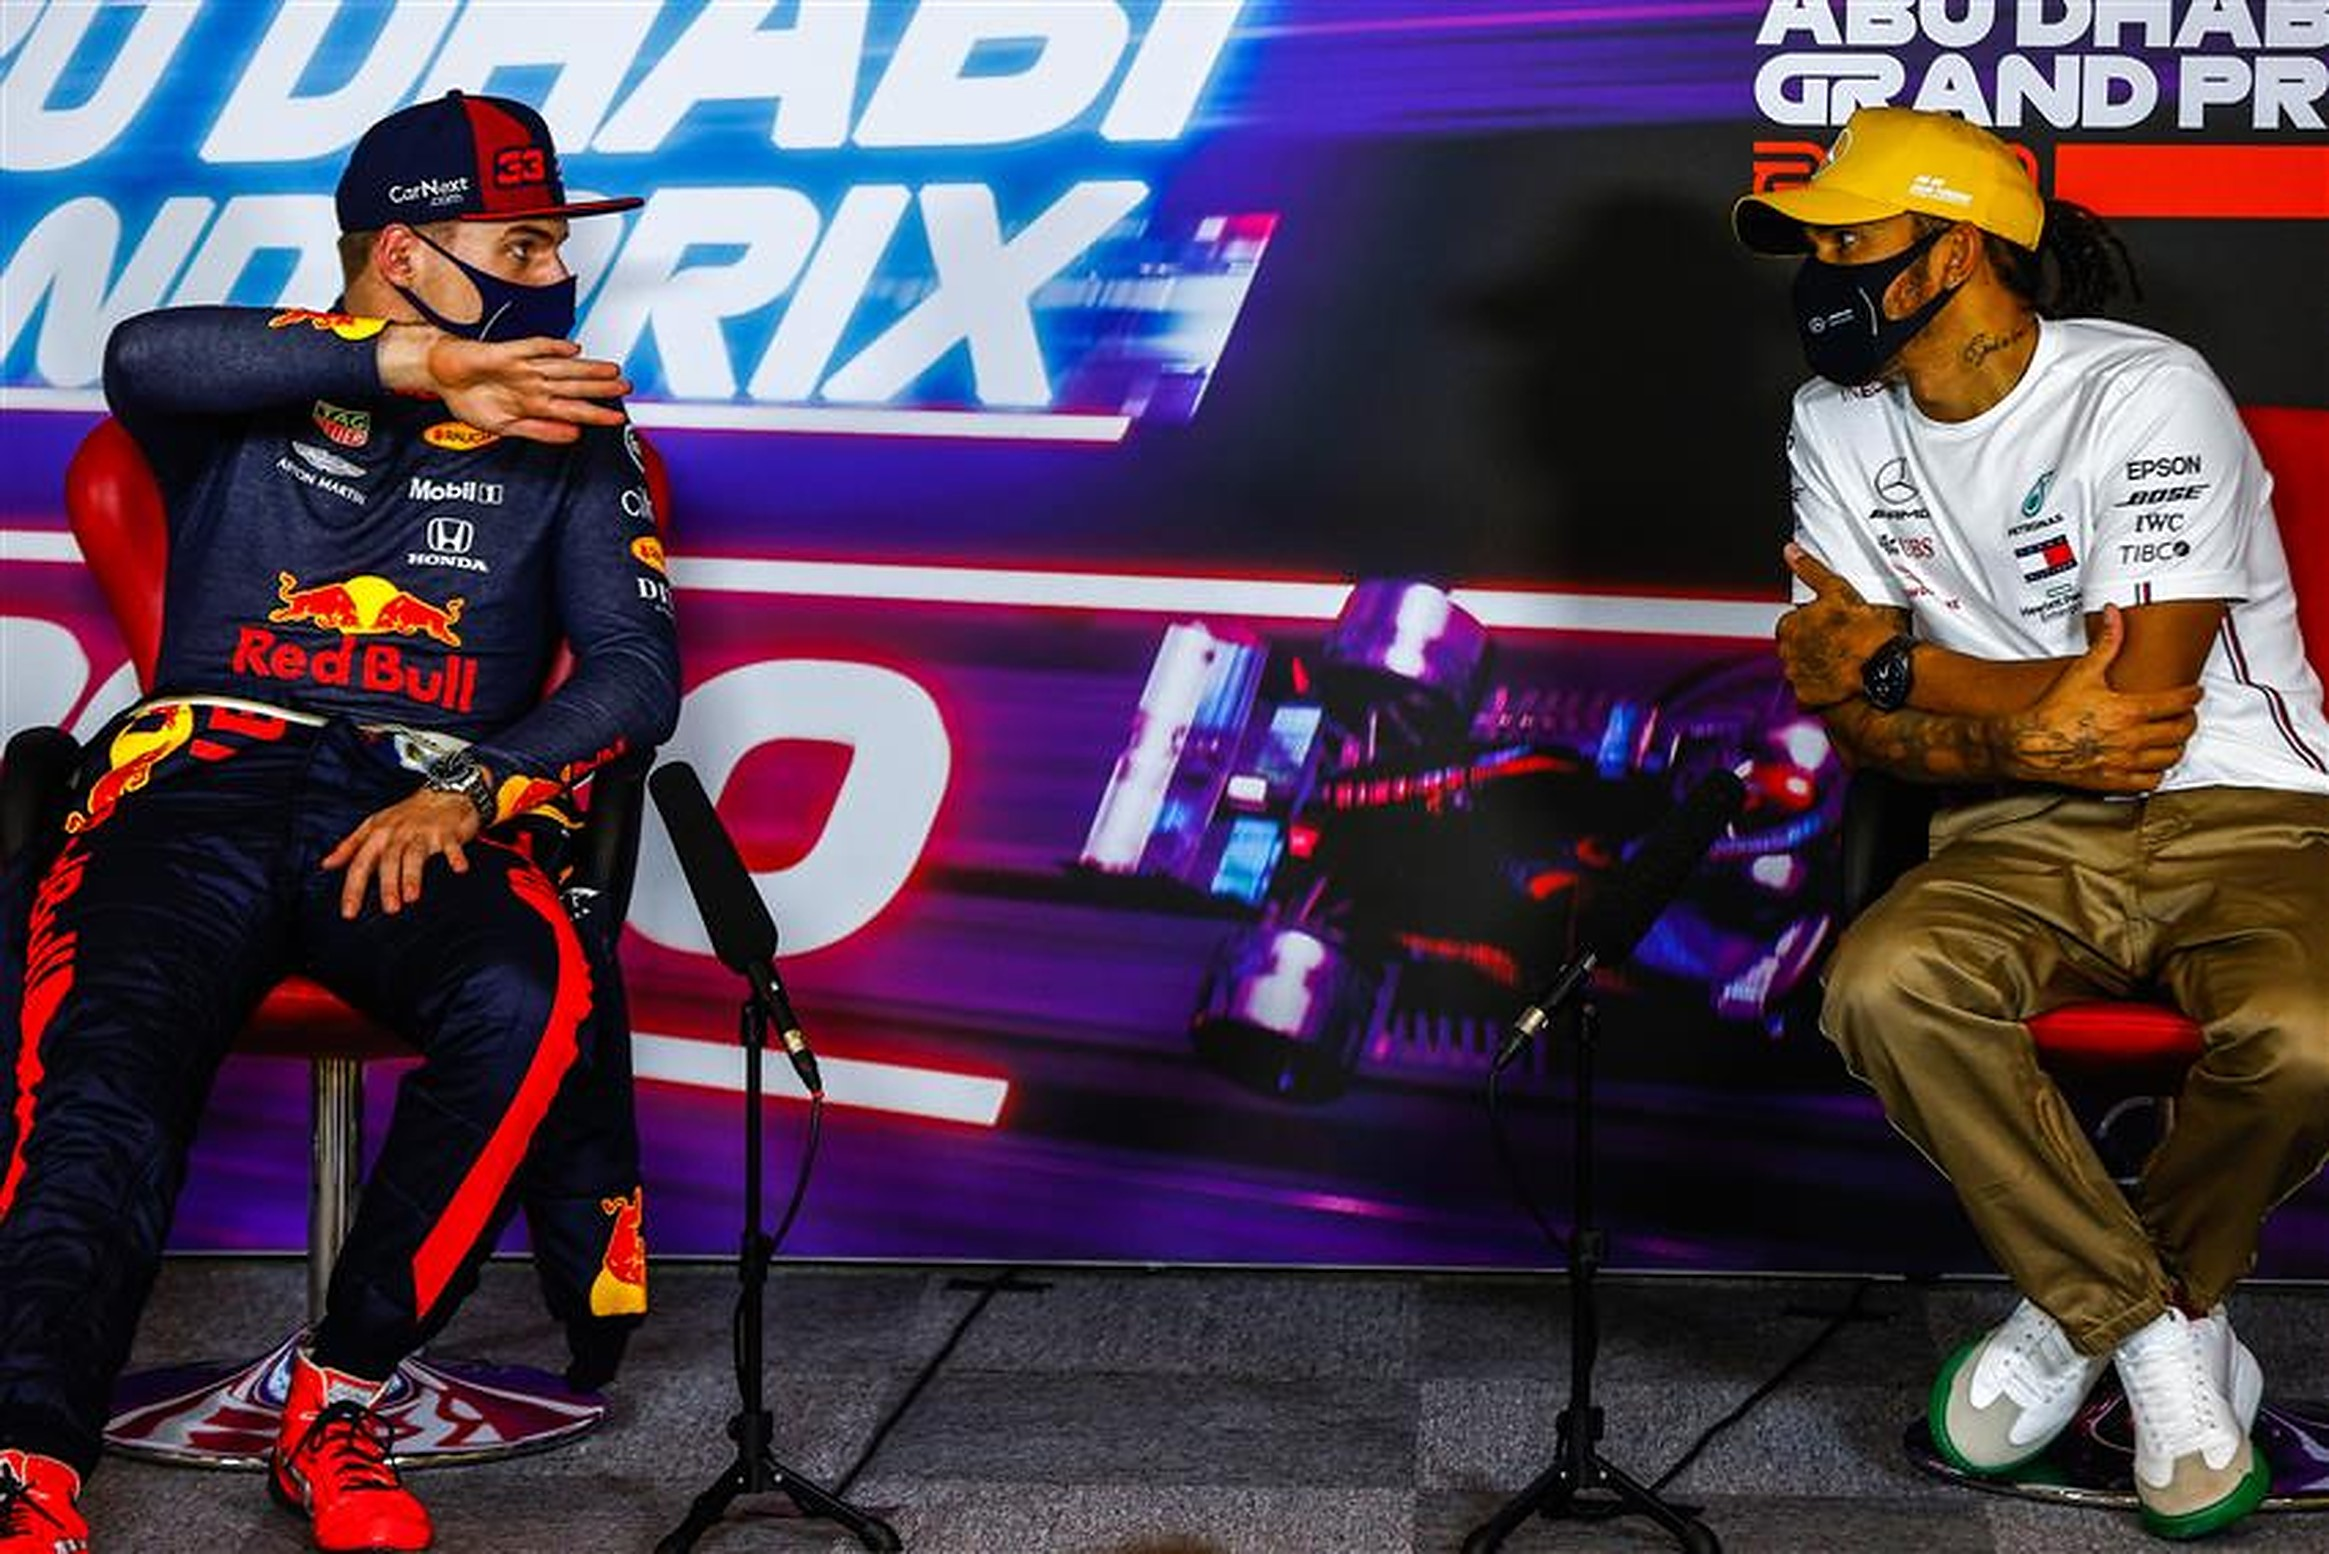 Lewis Hamilton and Max Verstappen amid Mercedes rumours - Formula1news.co.uk